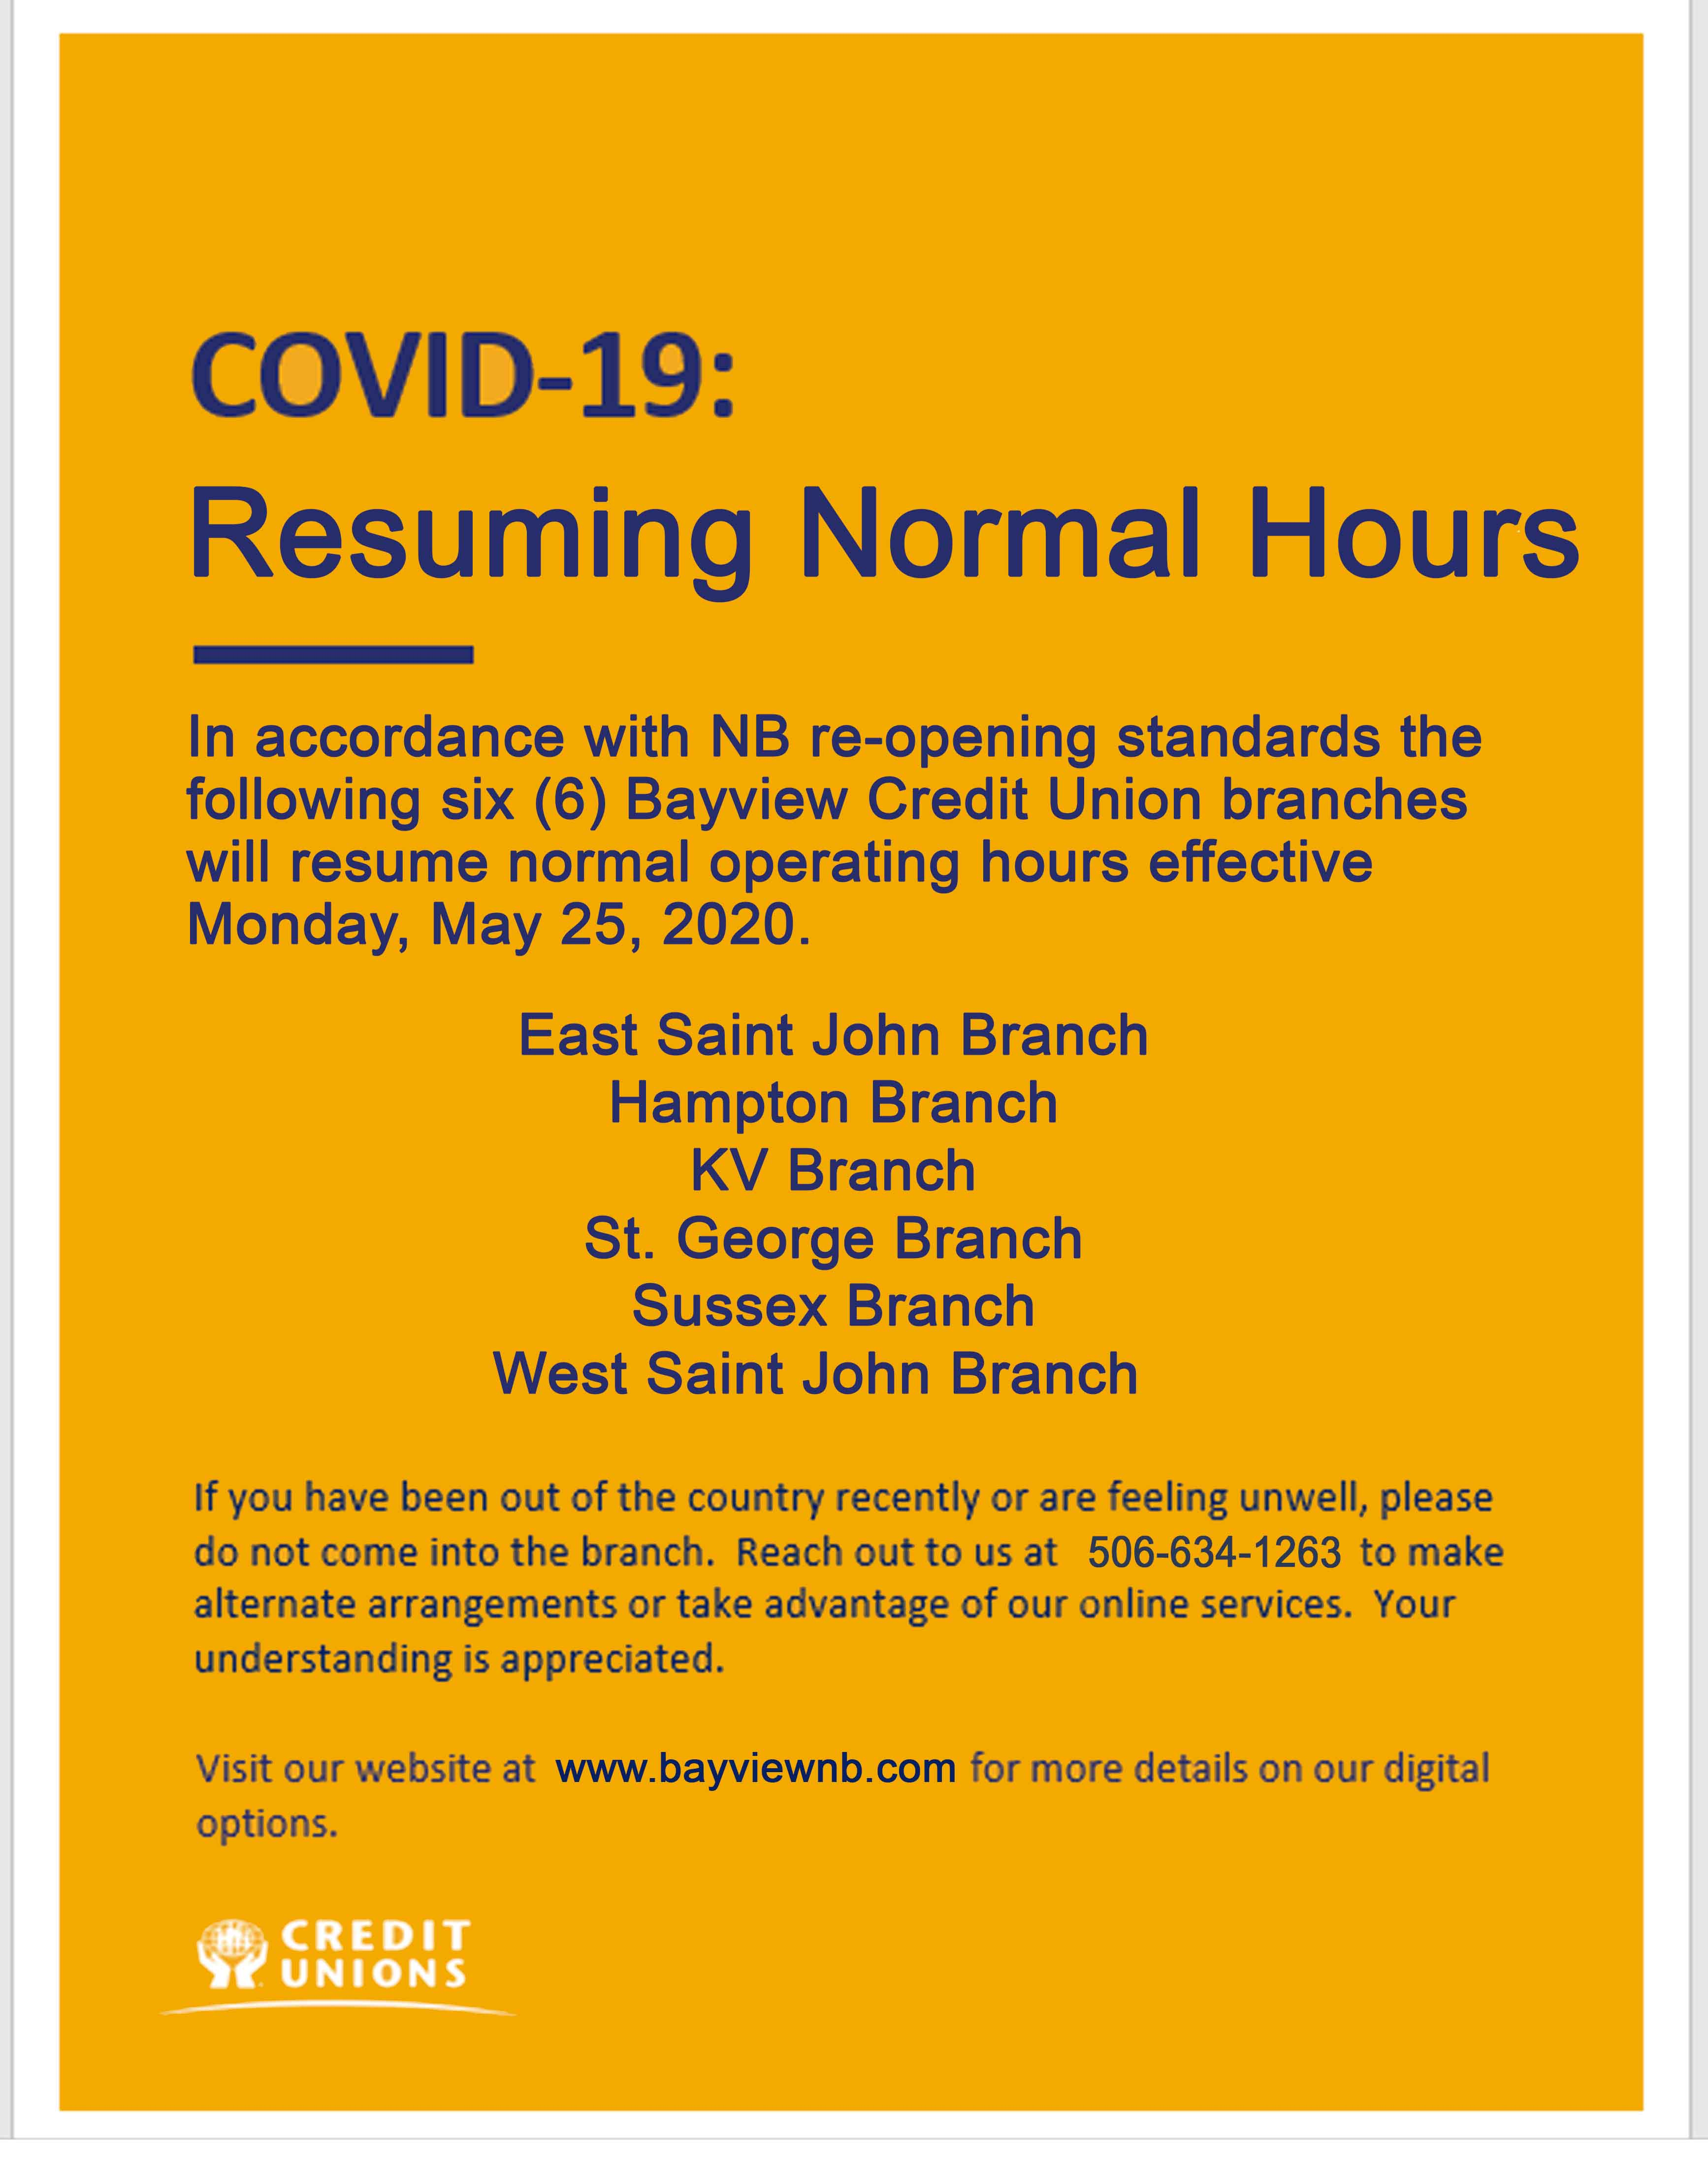 6 Branches resume normal hours